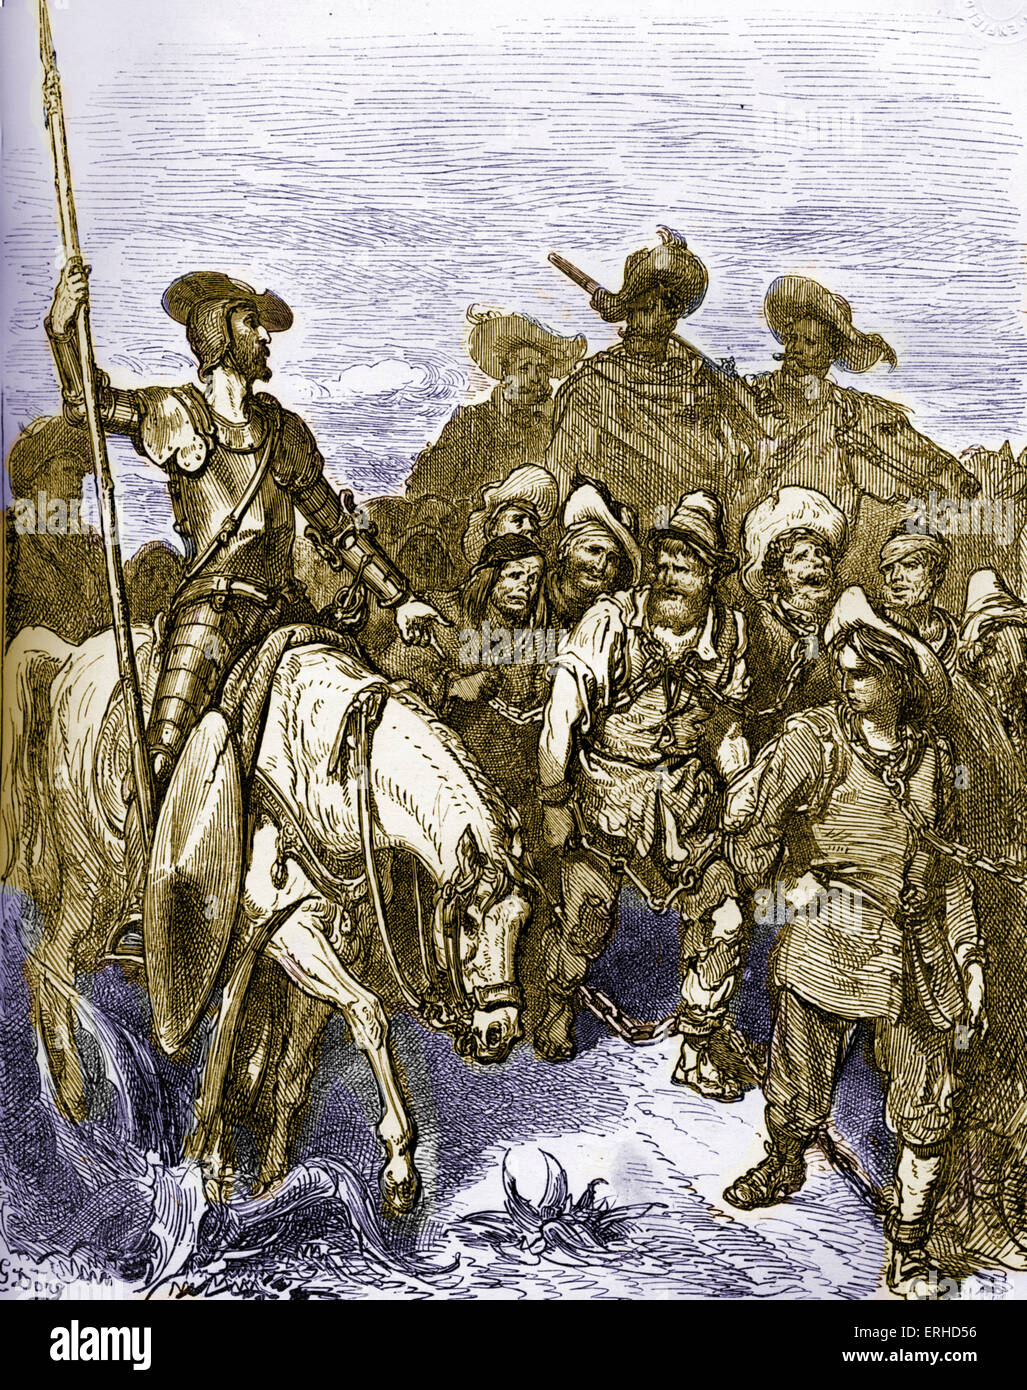 The History of Don Quixote de la Mancha  written by Miguel de Cervantes , Spanish author, and illustrated by Gustav - Stock Image